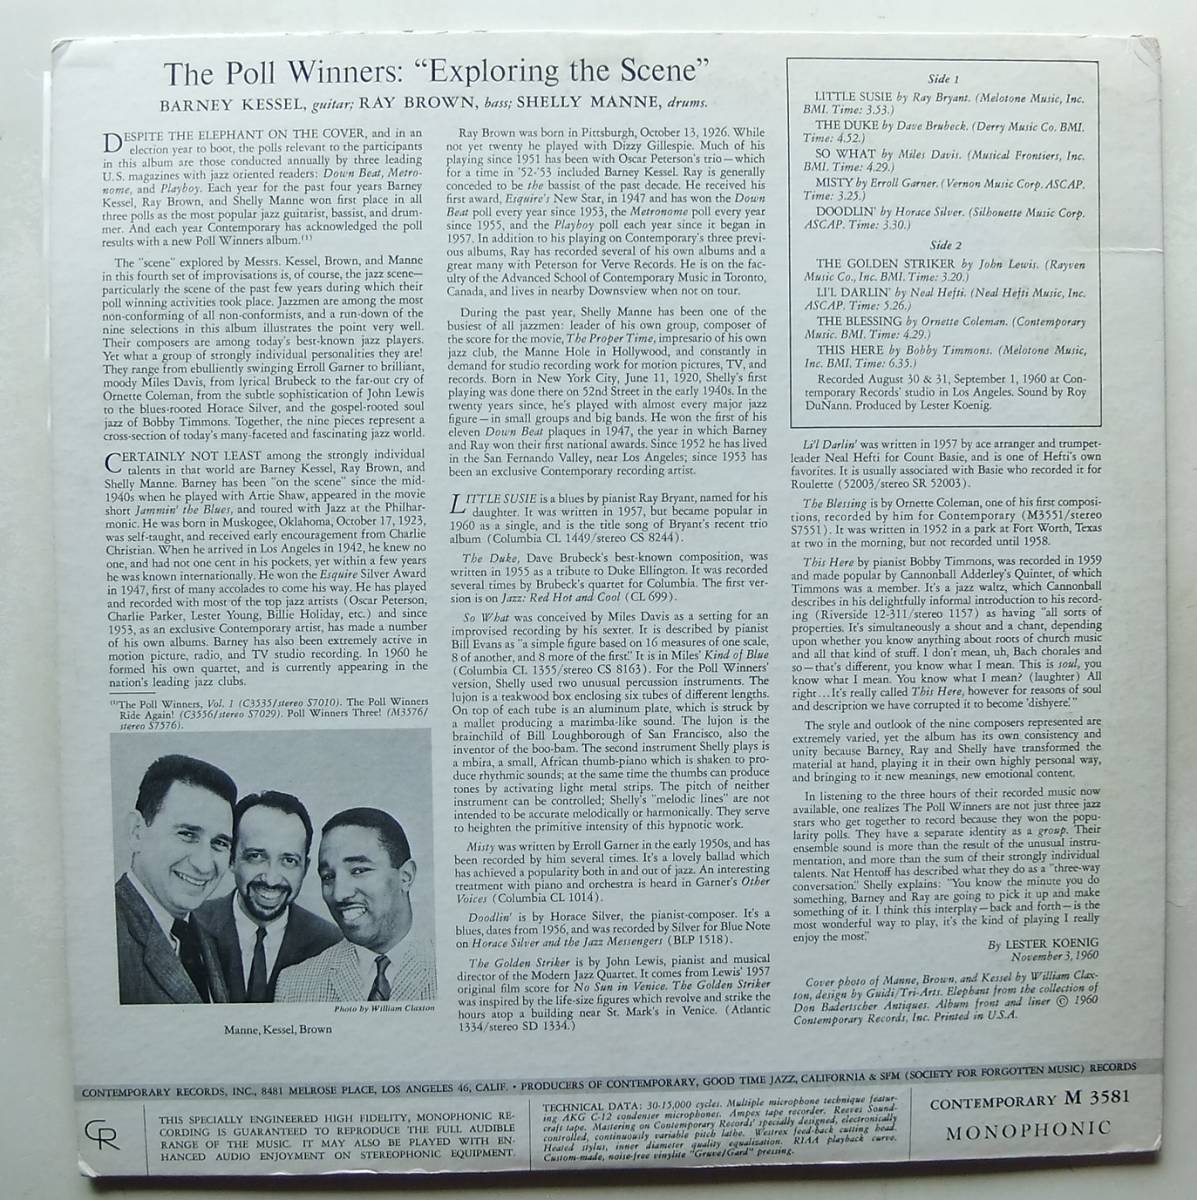 ◆ POLL WINNERS / BARNEY KESSEL, SHELLY MANNE & RAY BROWN / Exploring The Scene ◆ Contemporary M 3581 (yellow:dg) ◆ V_画像2